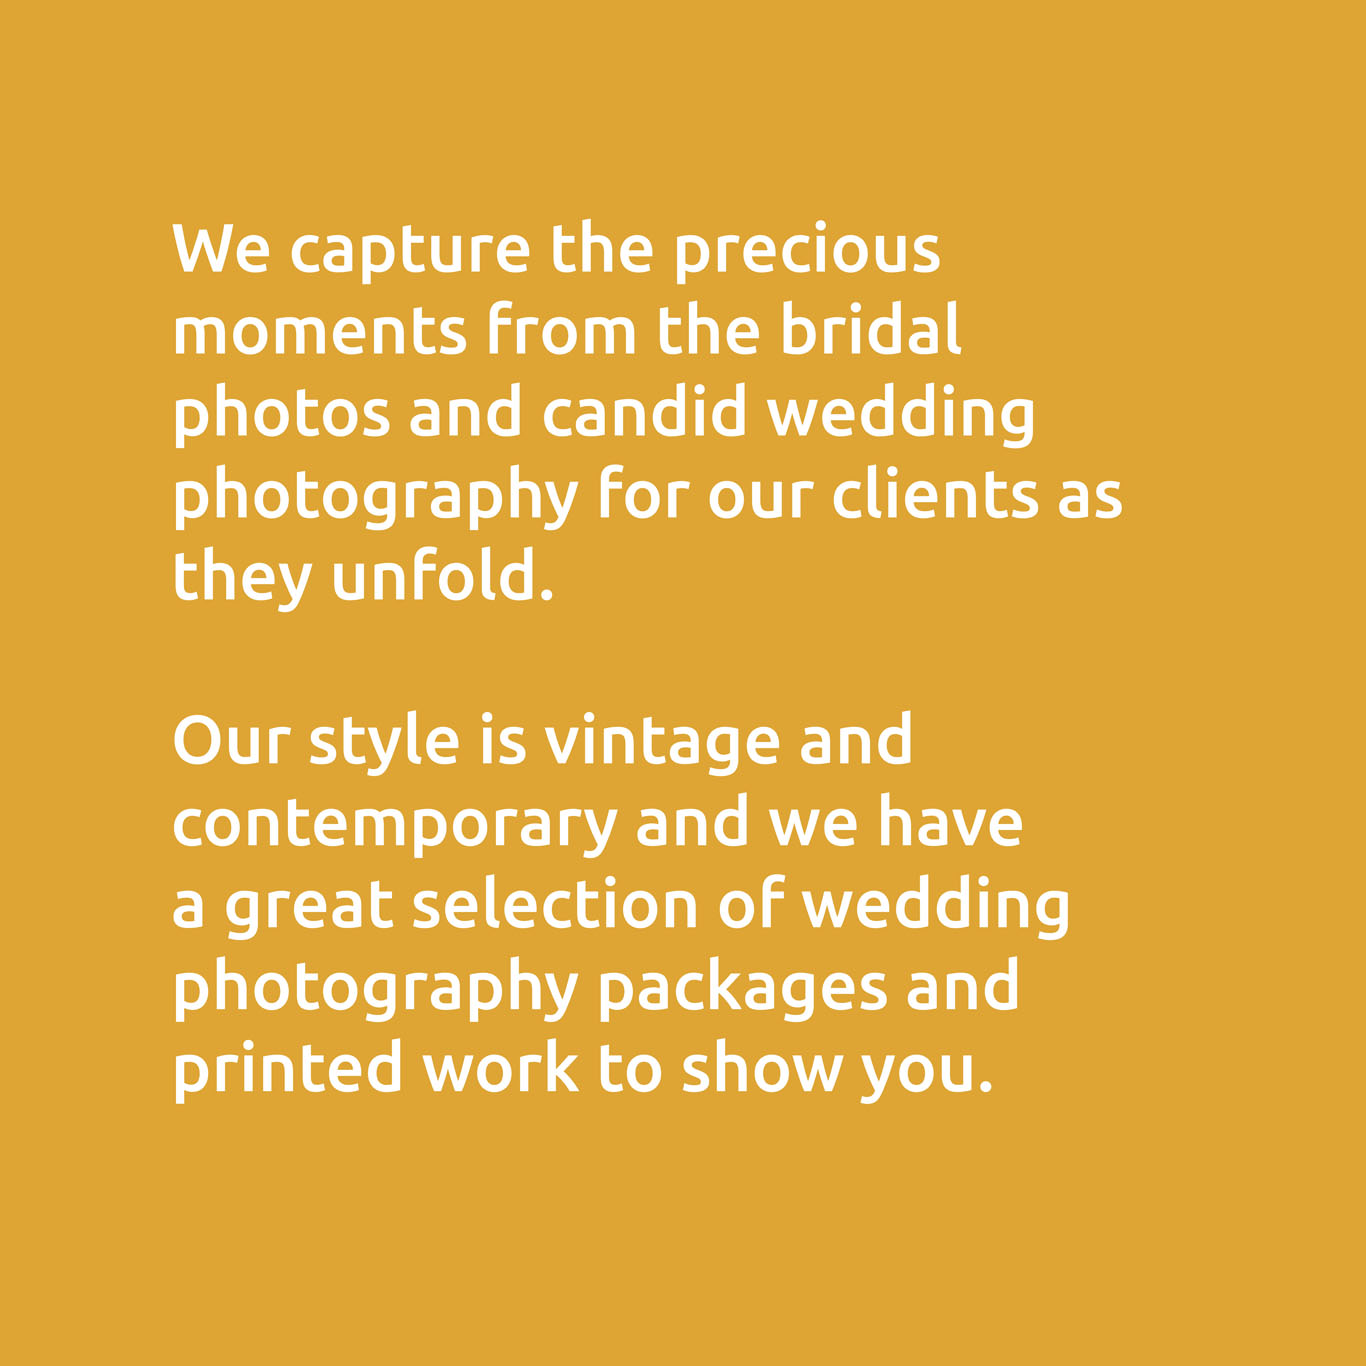 We capture the precious moments from the bridal photos and candid wedding photography for our clients as they unfold. Our style is vintage and contemporary and we have a great selection of wedding photography packages and printed work to show you.